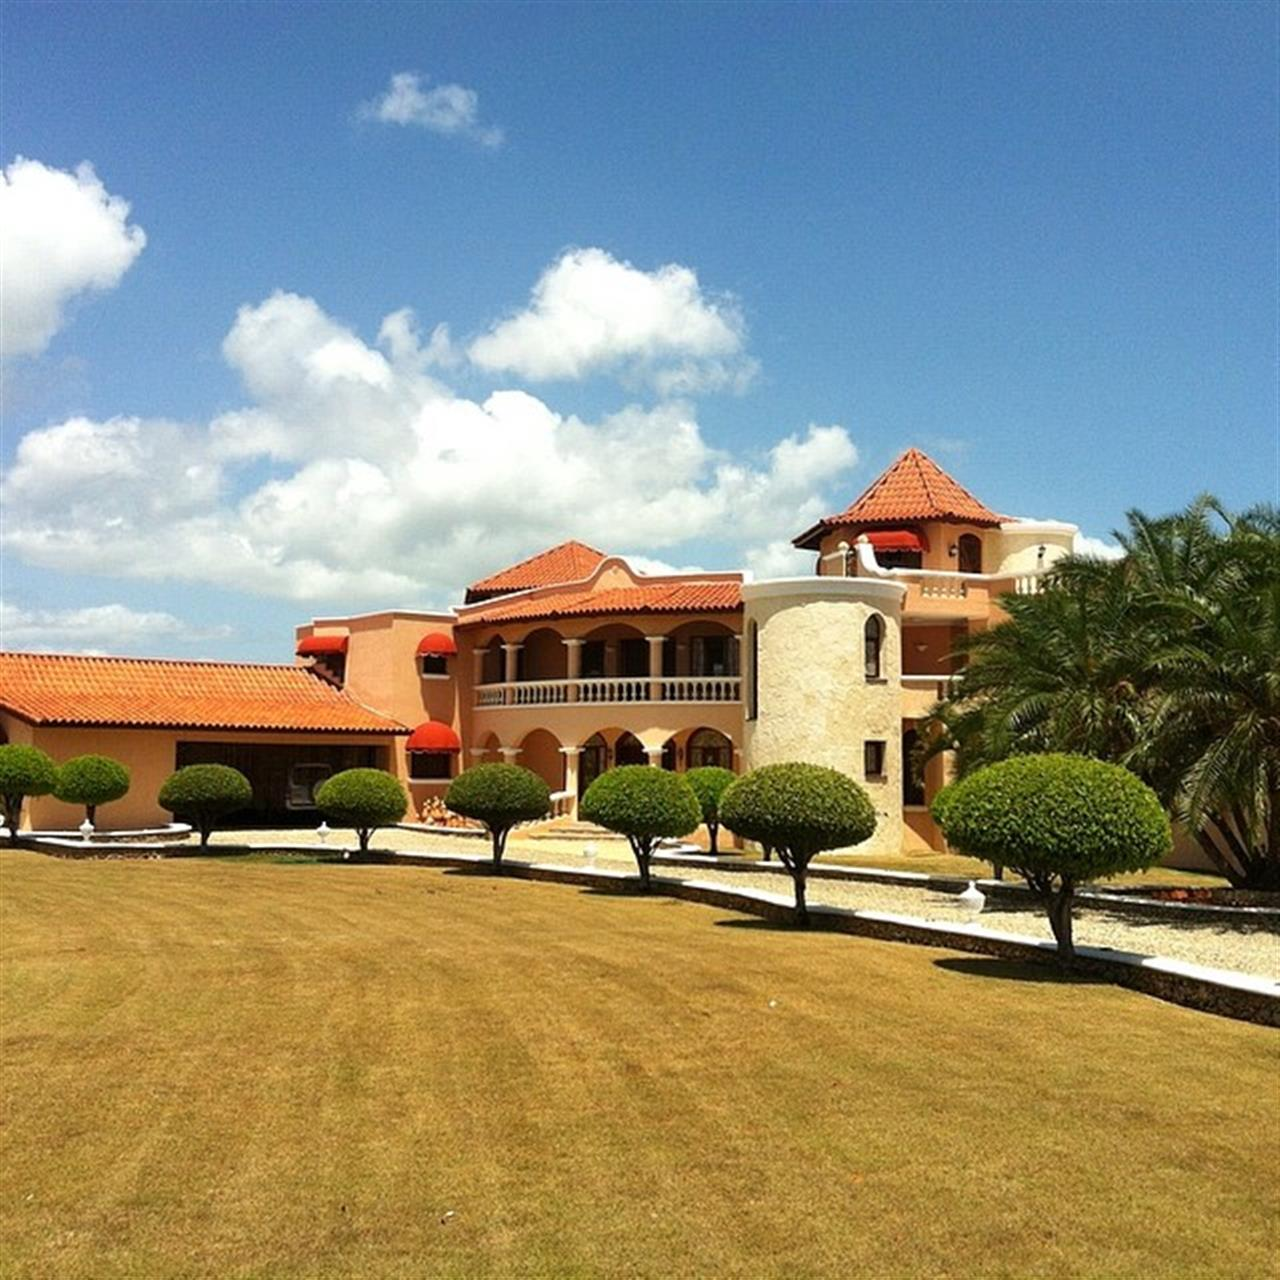 Gorgeous villa in the Cabarete and Sosua area for sale. Contact sabine@selectcaribbean.com for more details